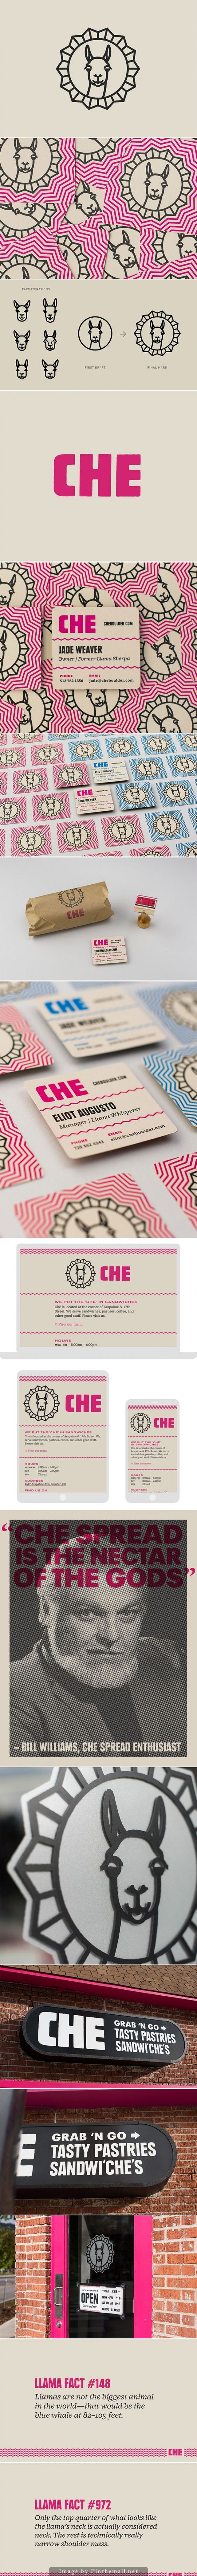 Cafe Che Branding by Cast Iron Design